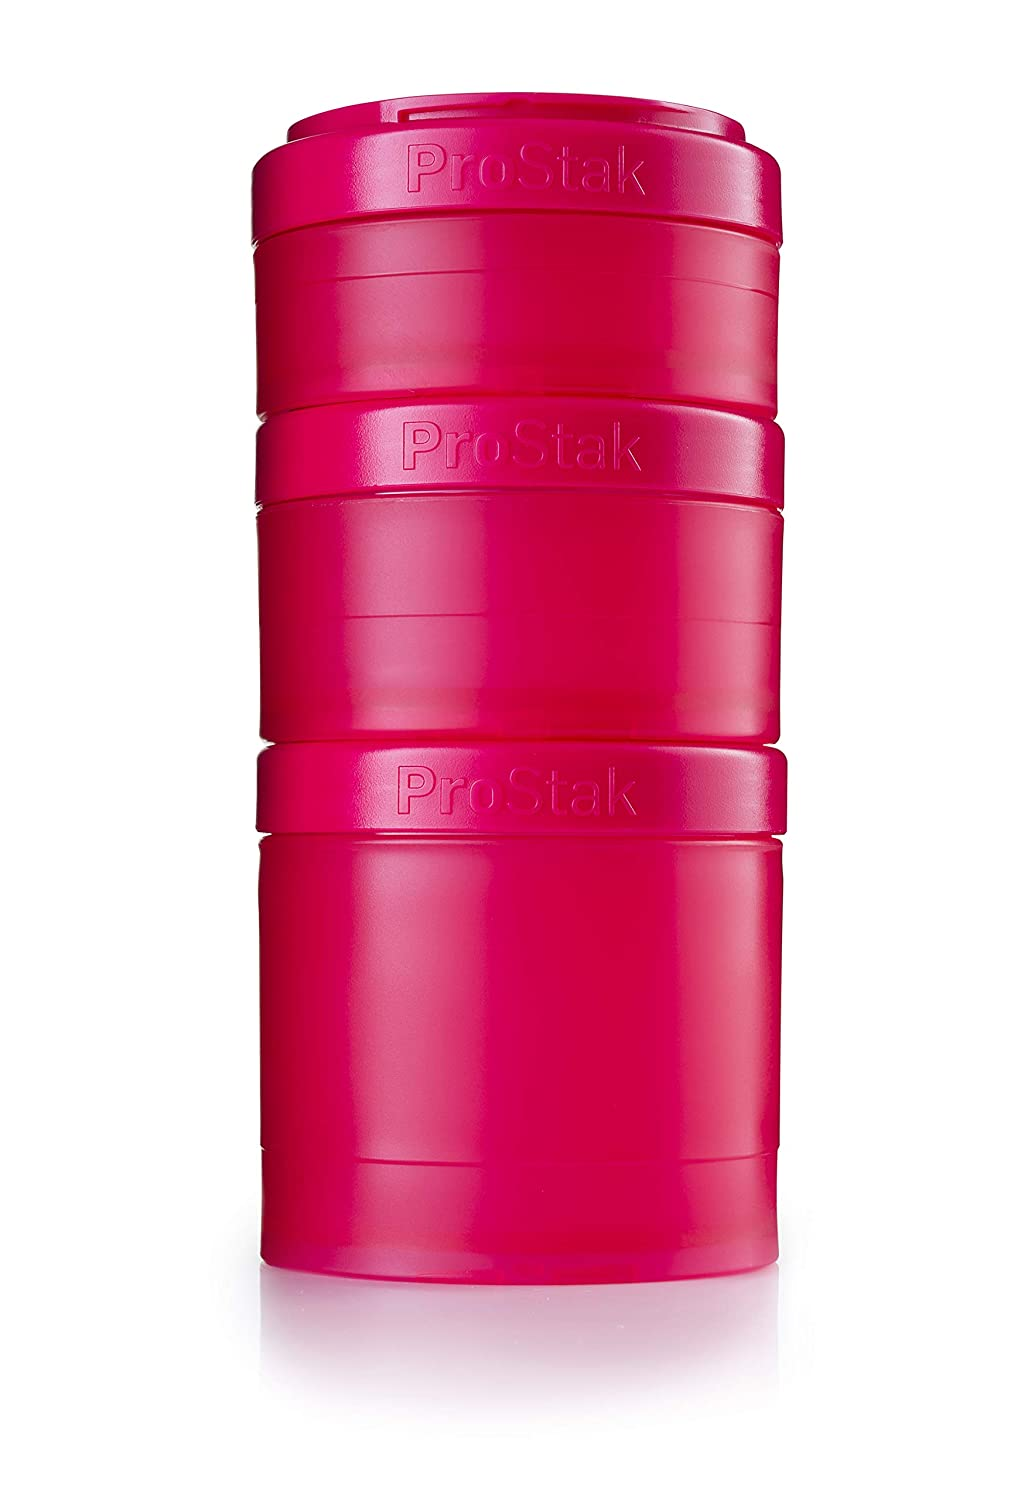 BlenderBottle ProStak Twist n' Lock Storage Jars Expansion 3-Pak with Pill Tray, Pink/Pink